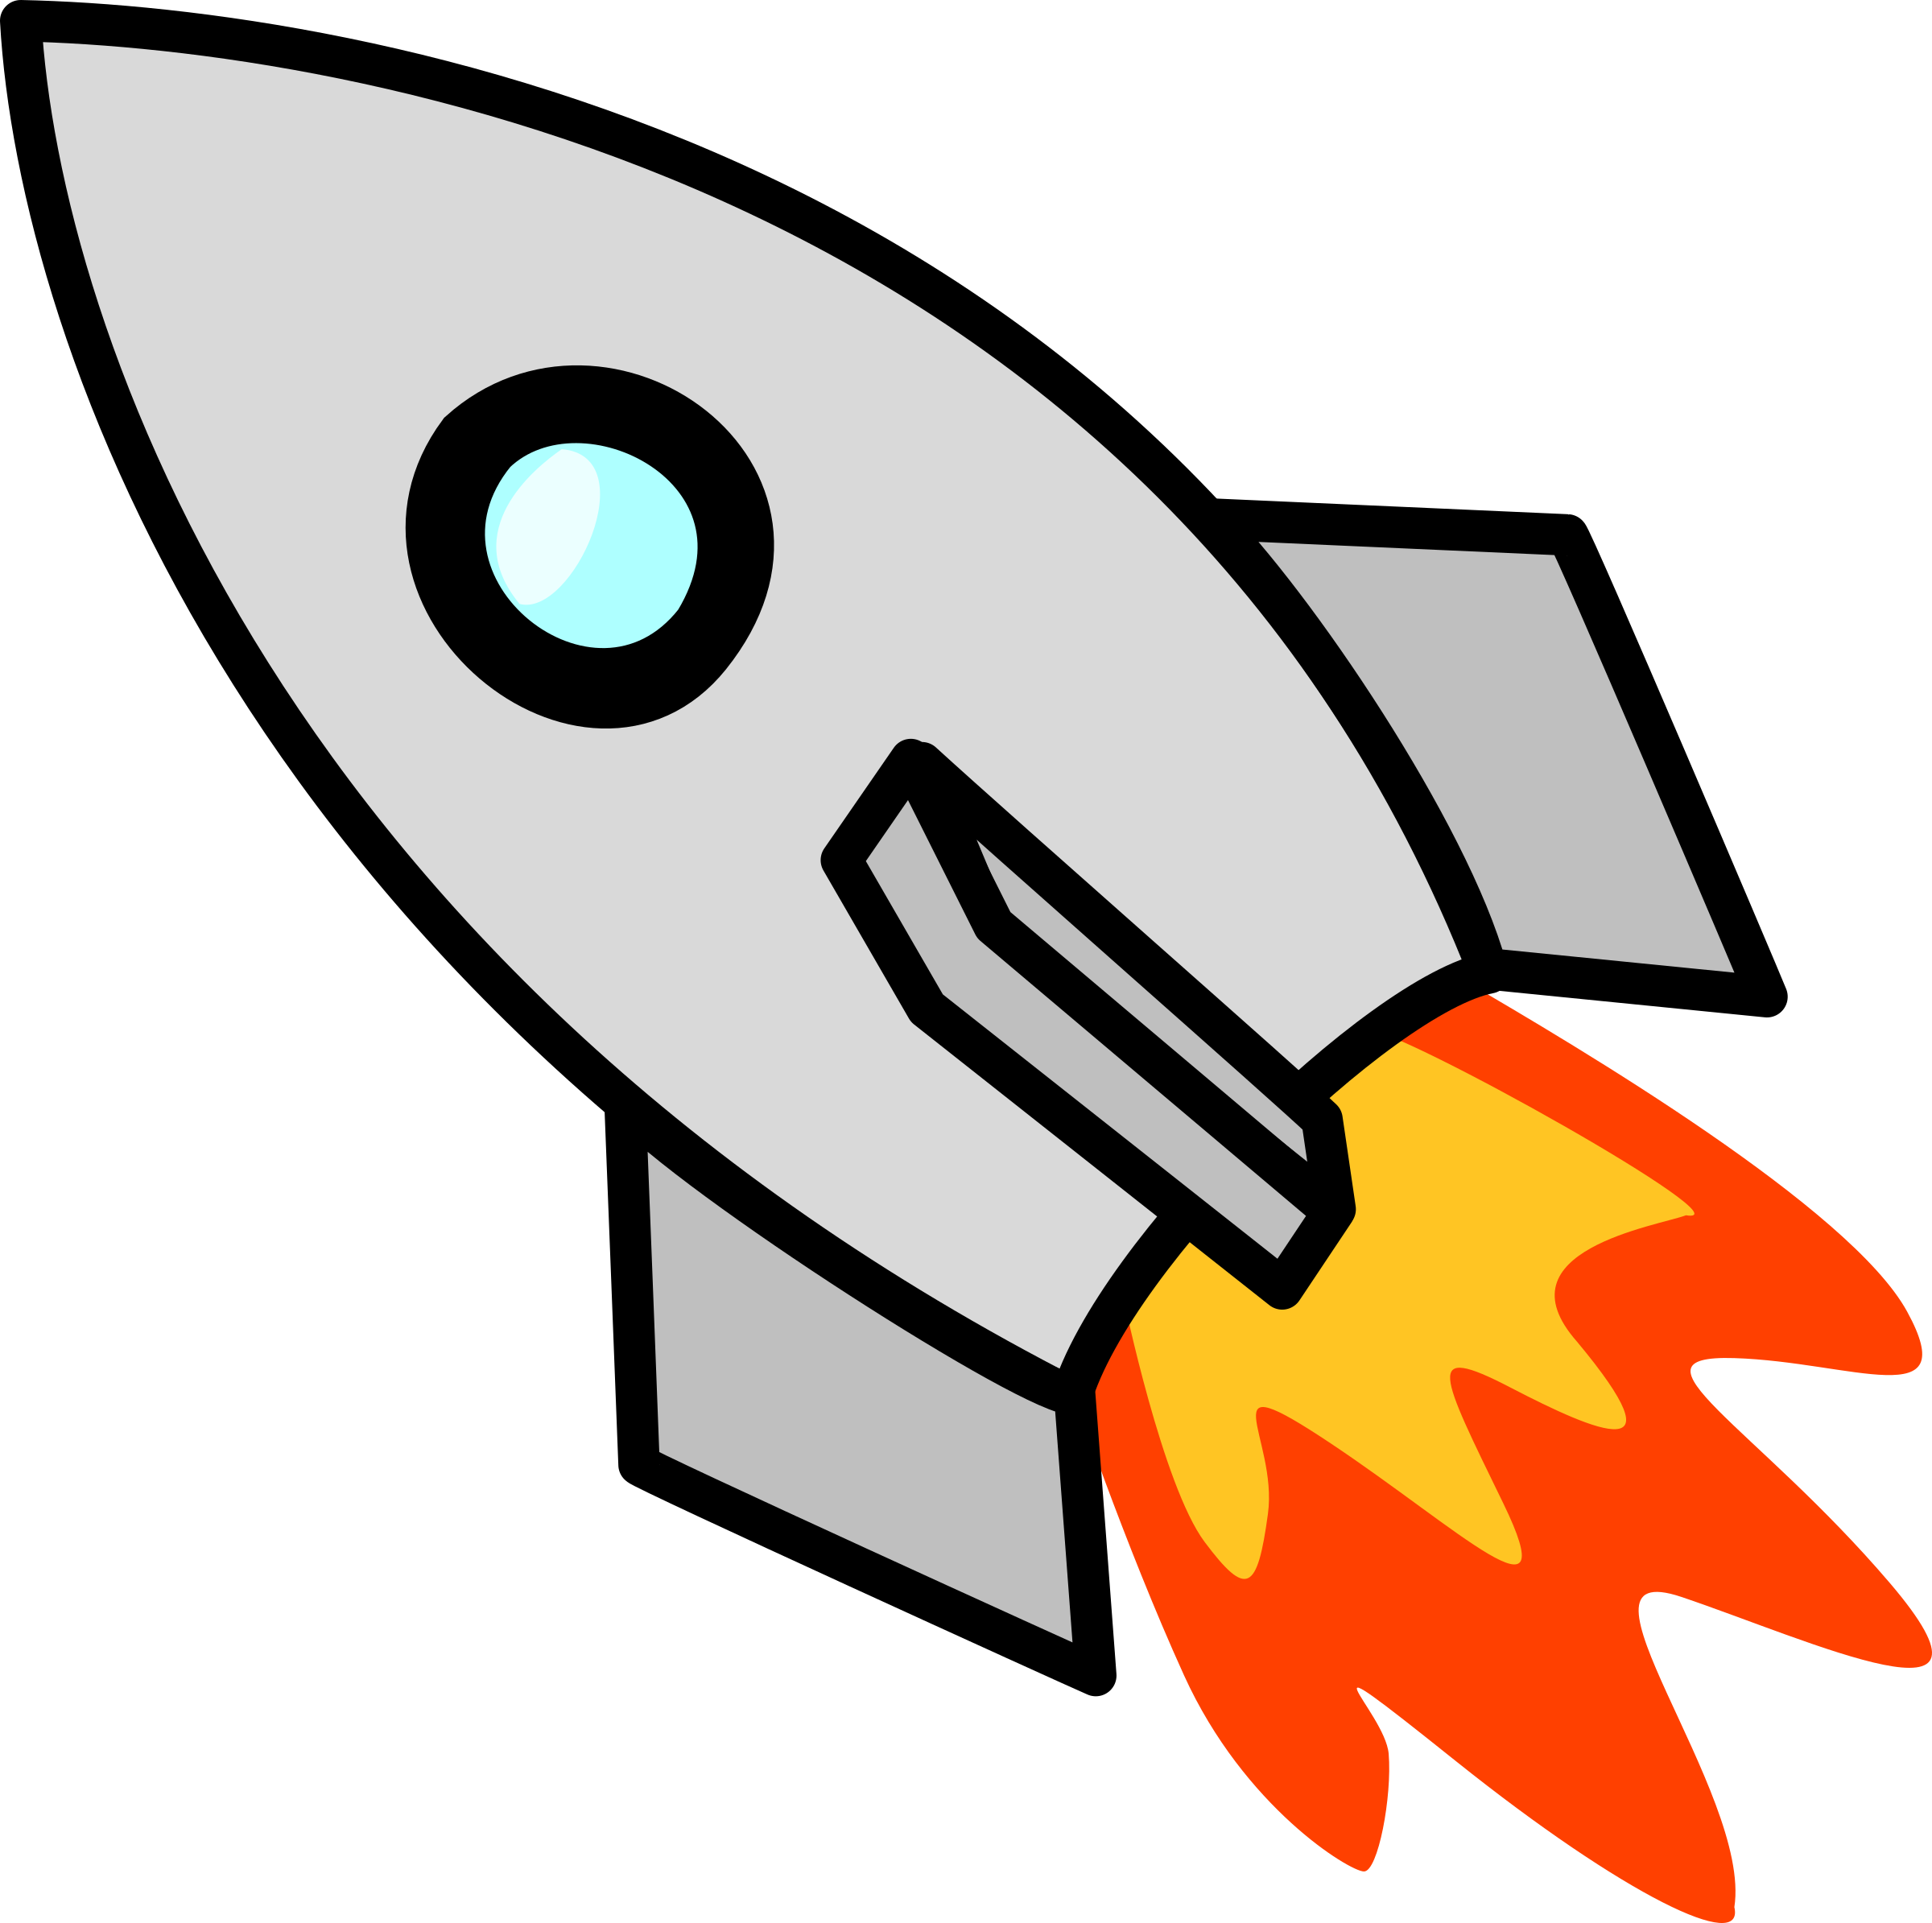 Toy clipart toy book. Rocket big image png